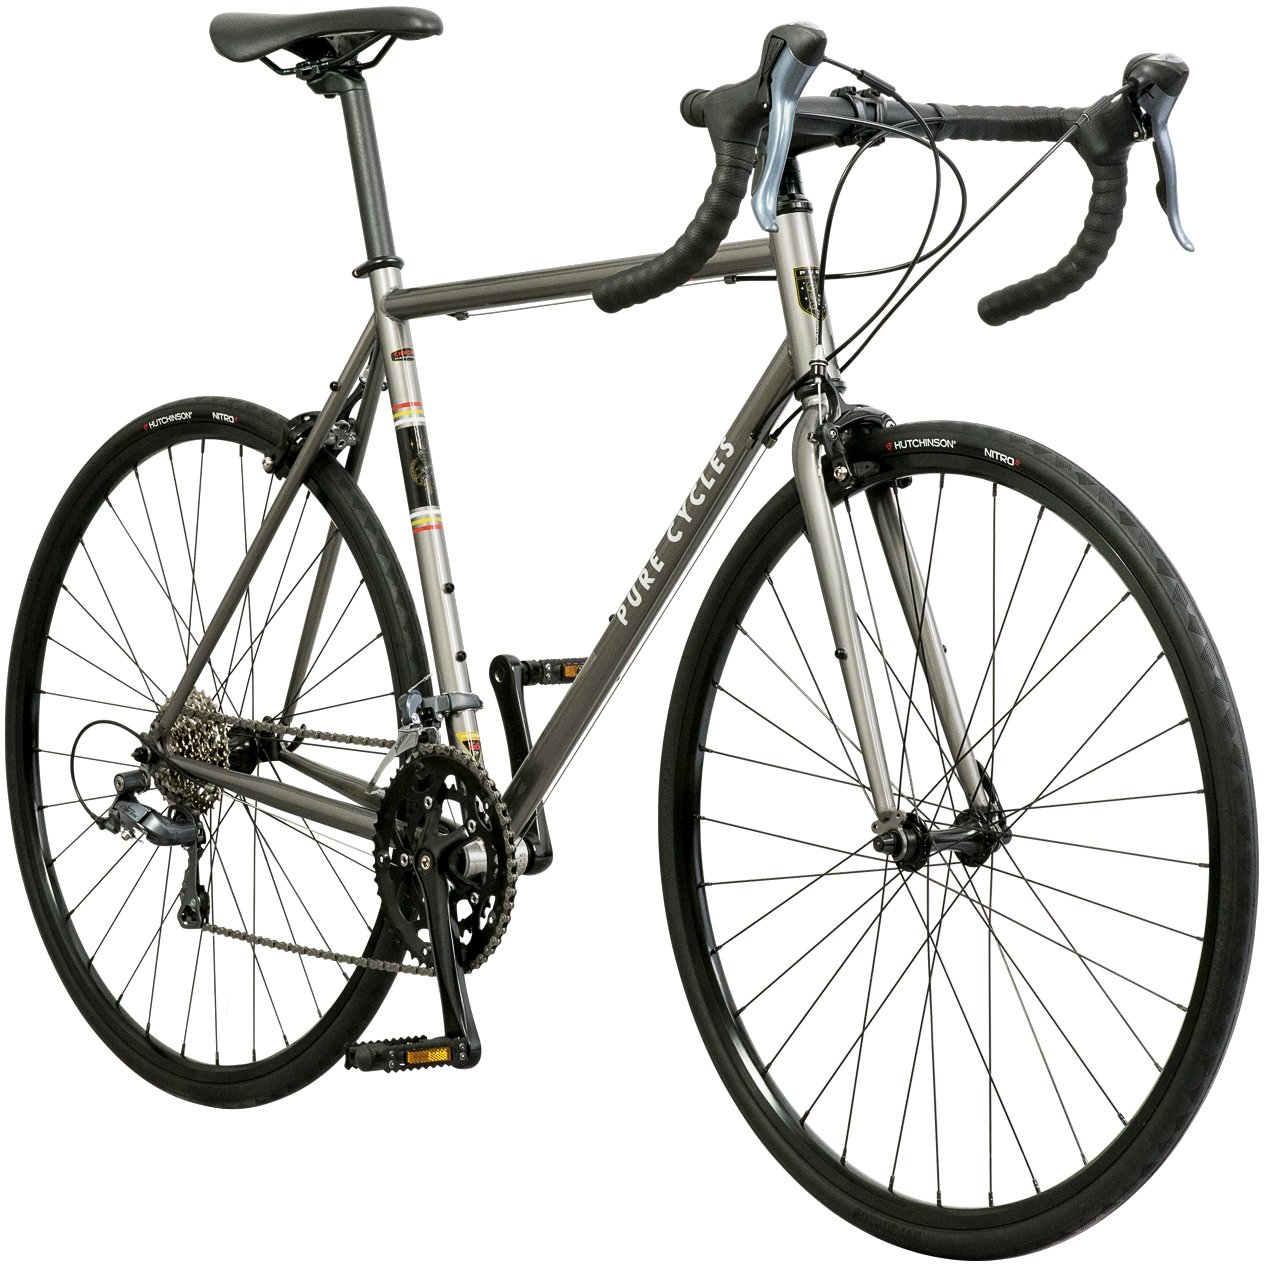 93c6c48028d Amazon.com : Pure Cycles Classic 16-Speed Road Bike : Sports & Outdoors